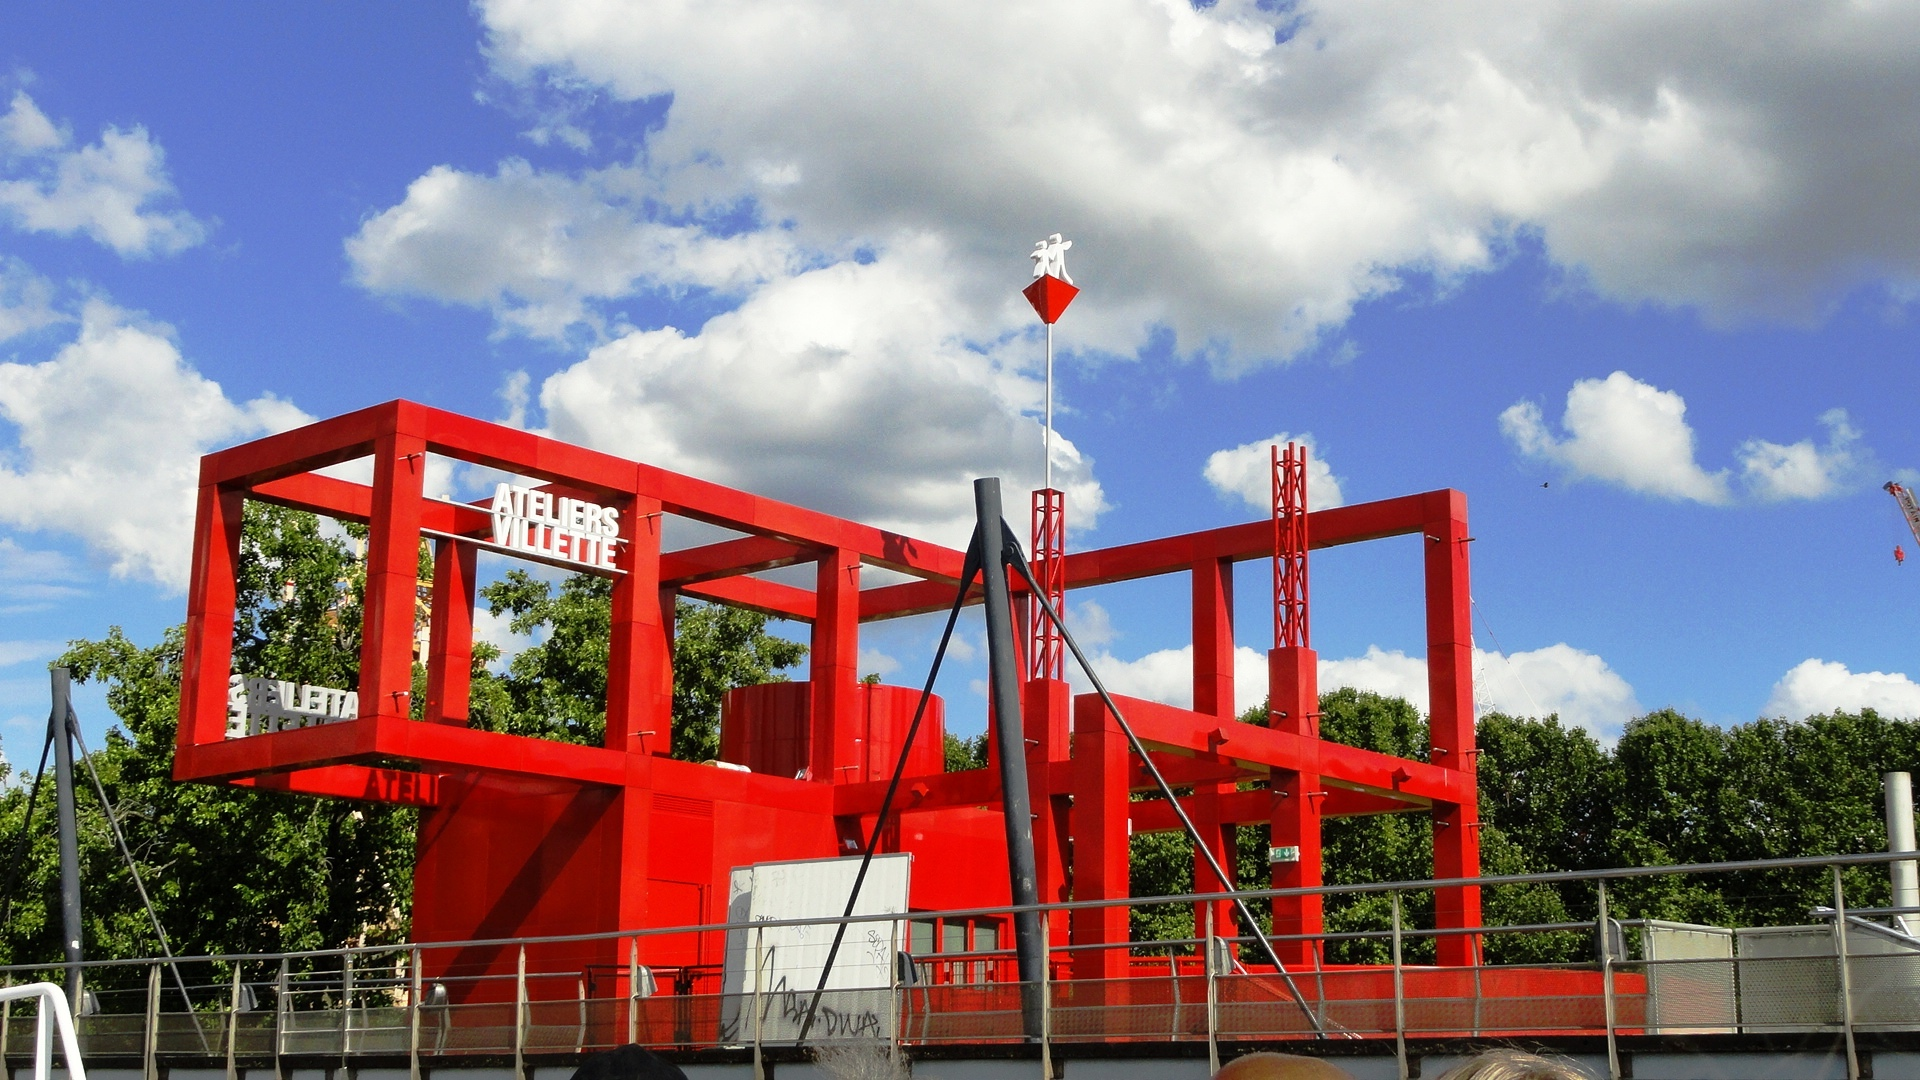 Parc de la Villette, Paris - Folie